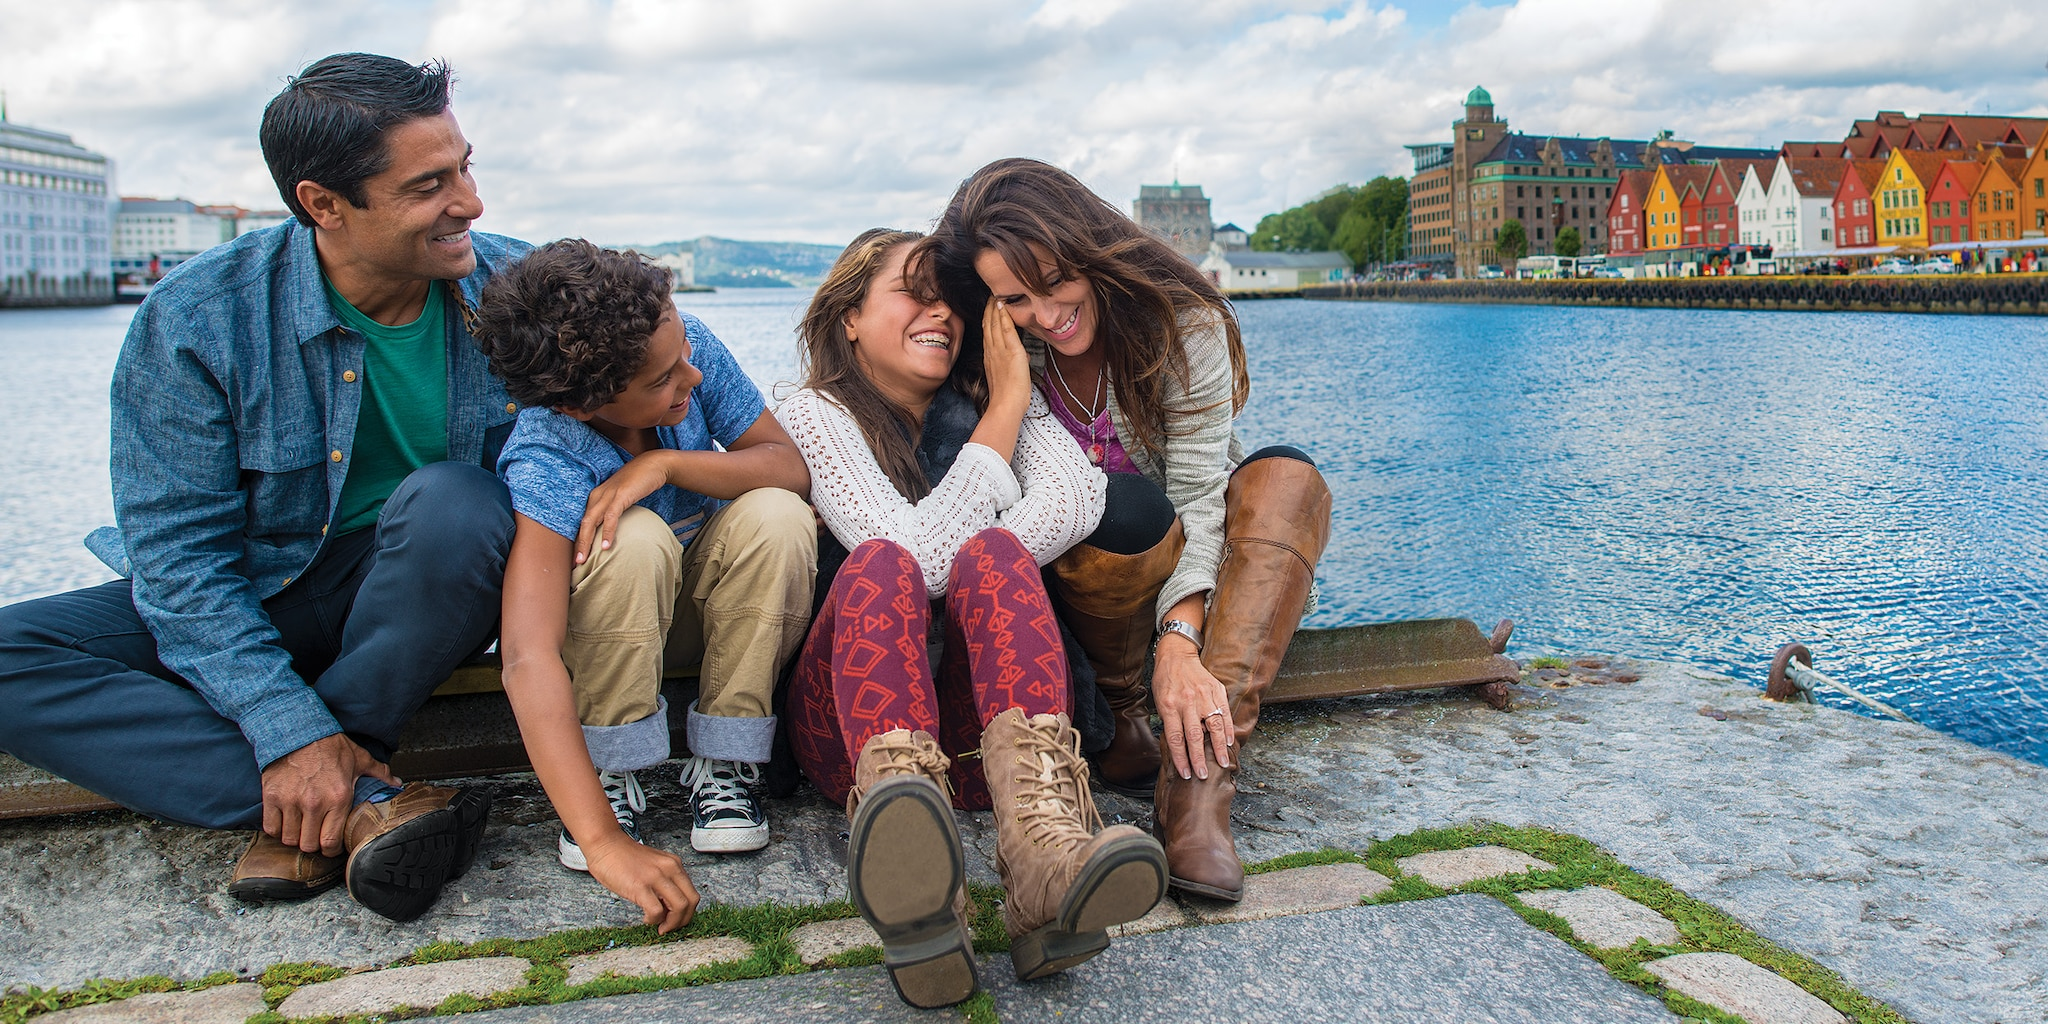 A family of 4 sits by the edge of a stone pier, overlooking the water next to the town of Bergen